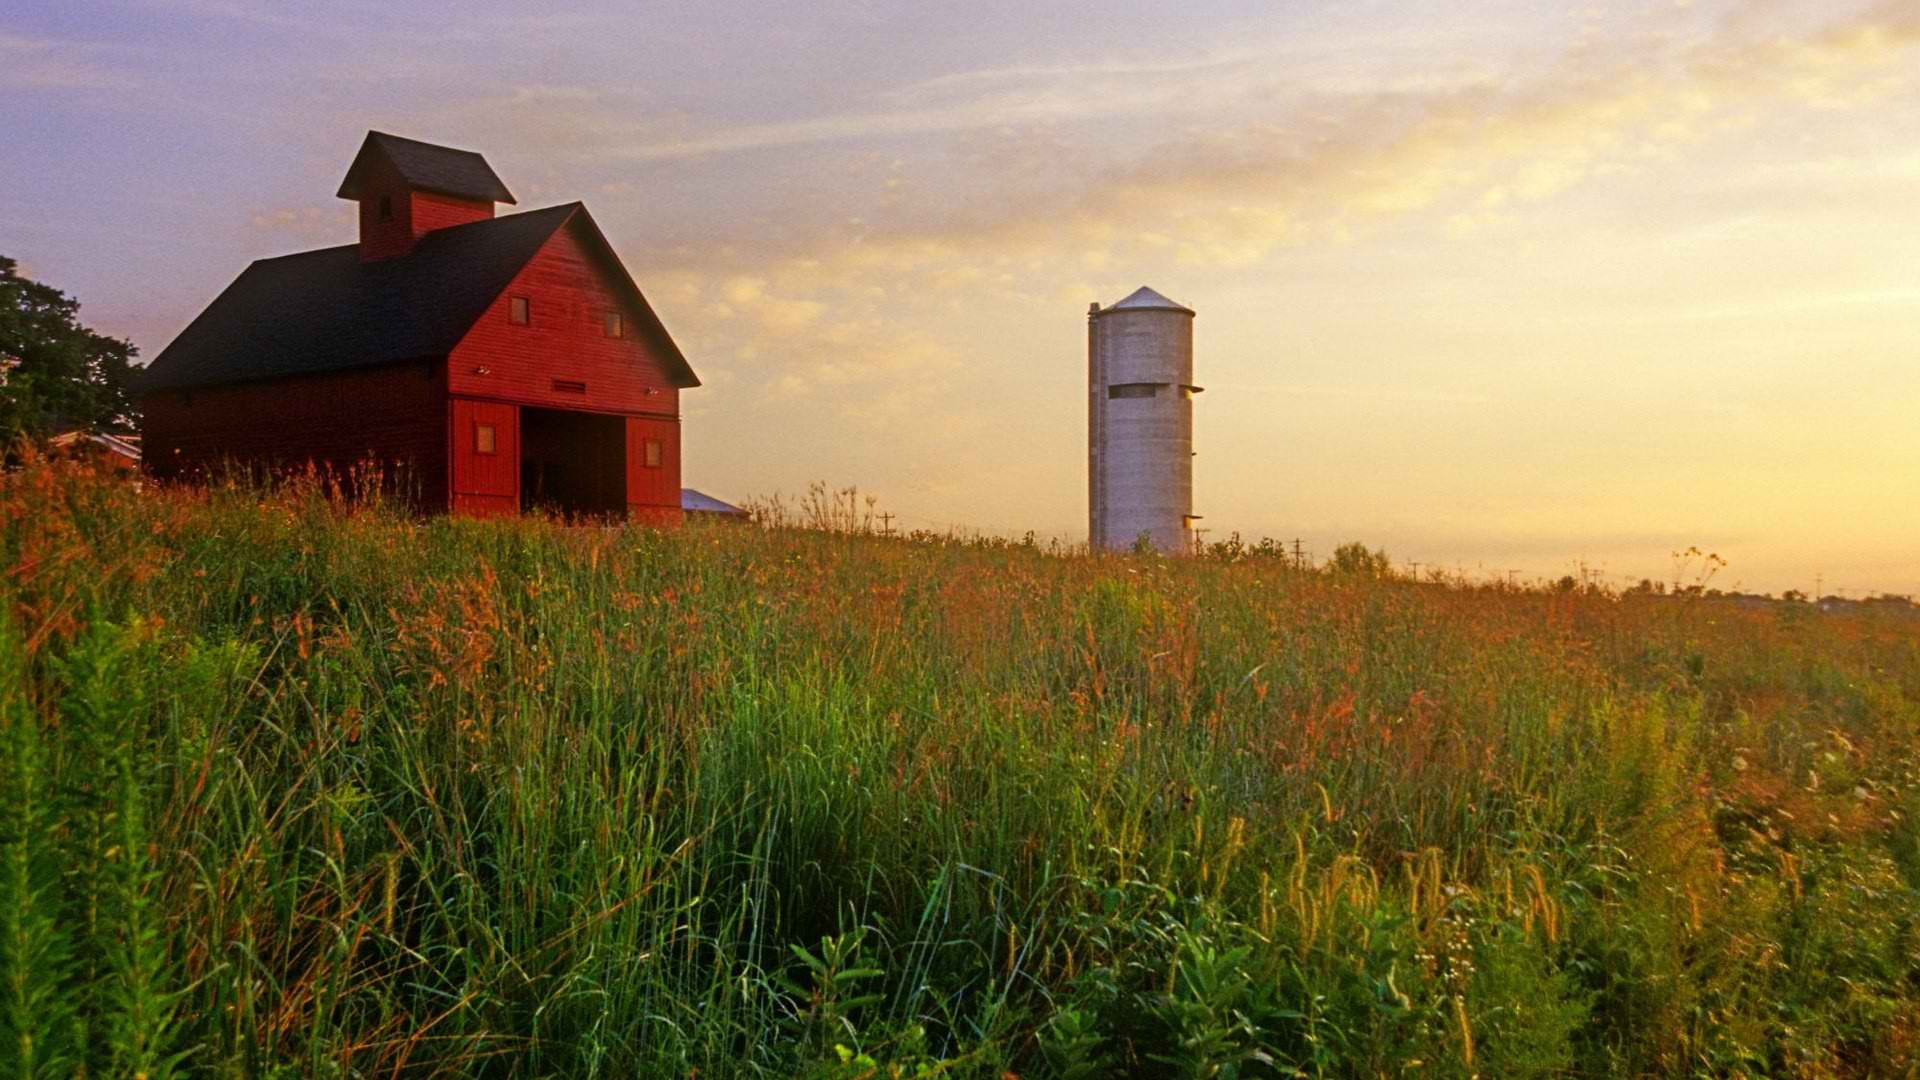 Ultra HD Barn Wallpapers 385JYUG   4USkY 1920x1080